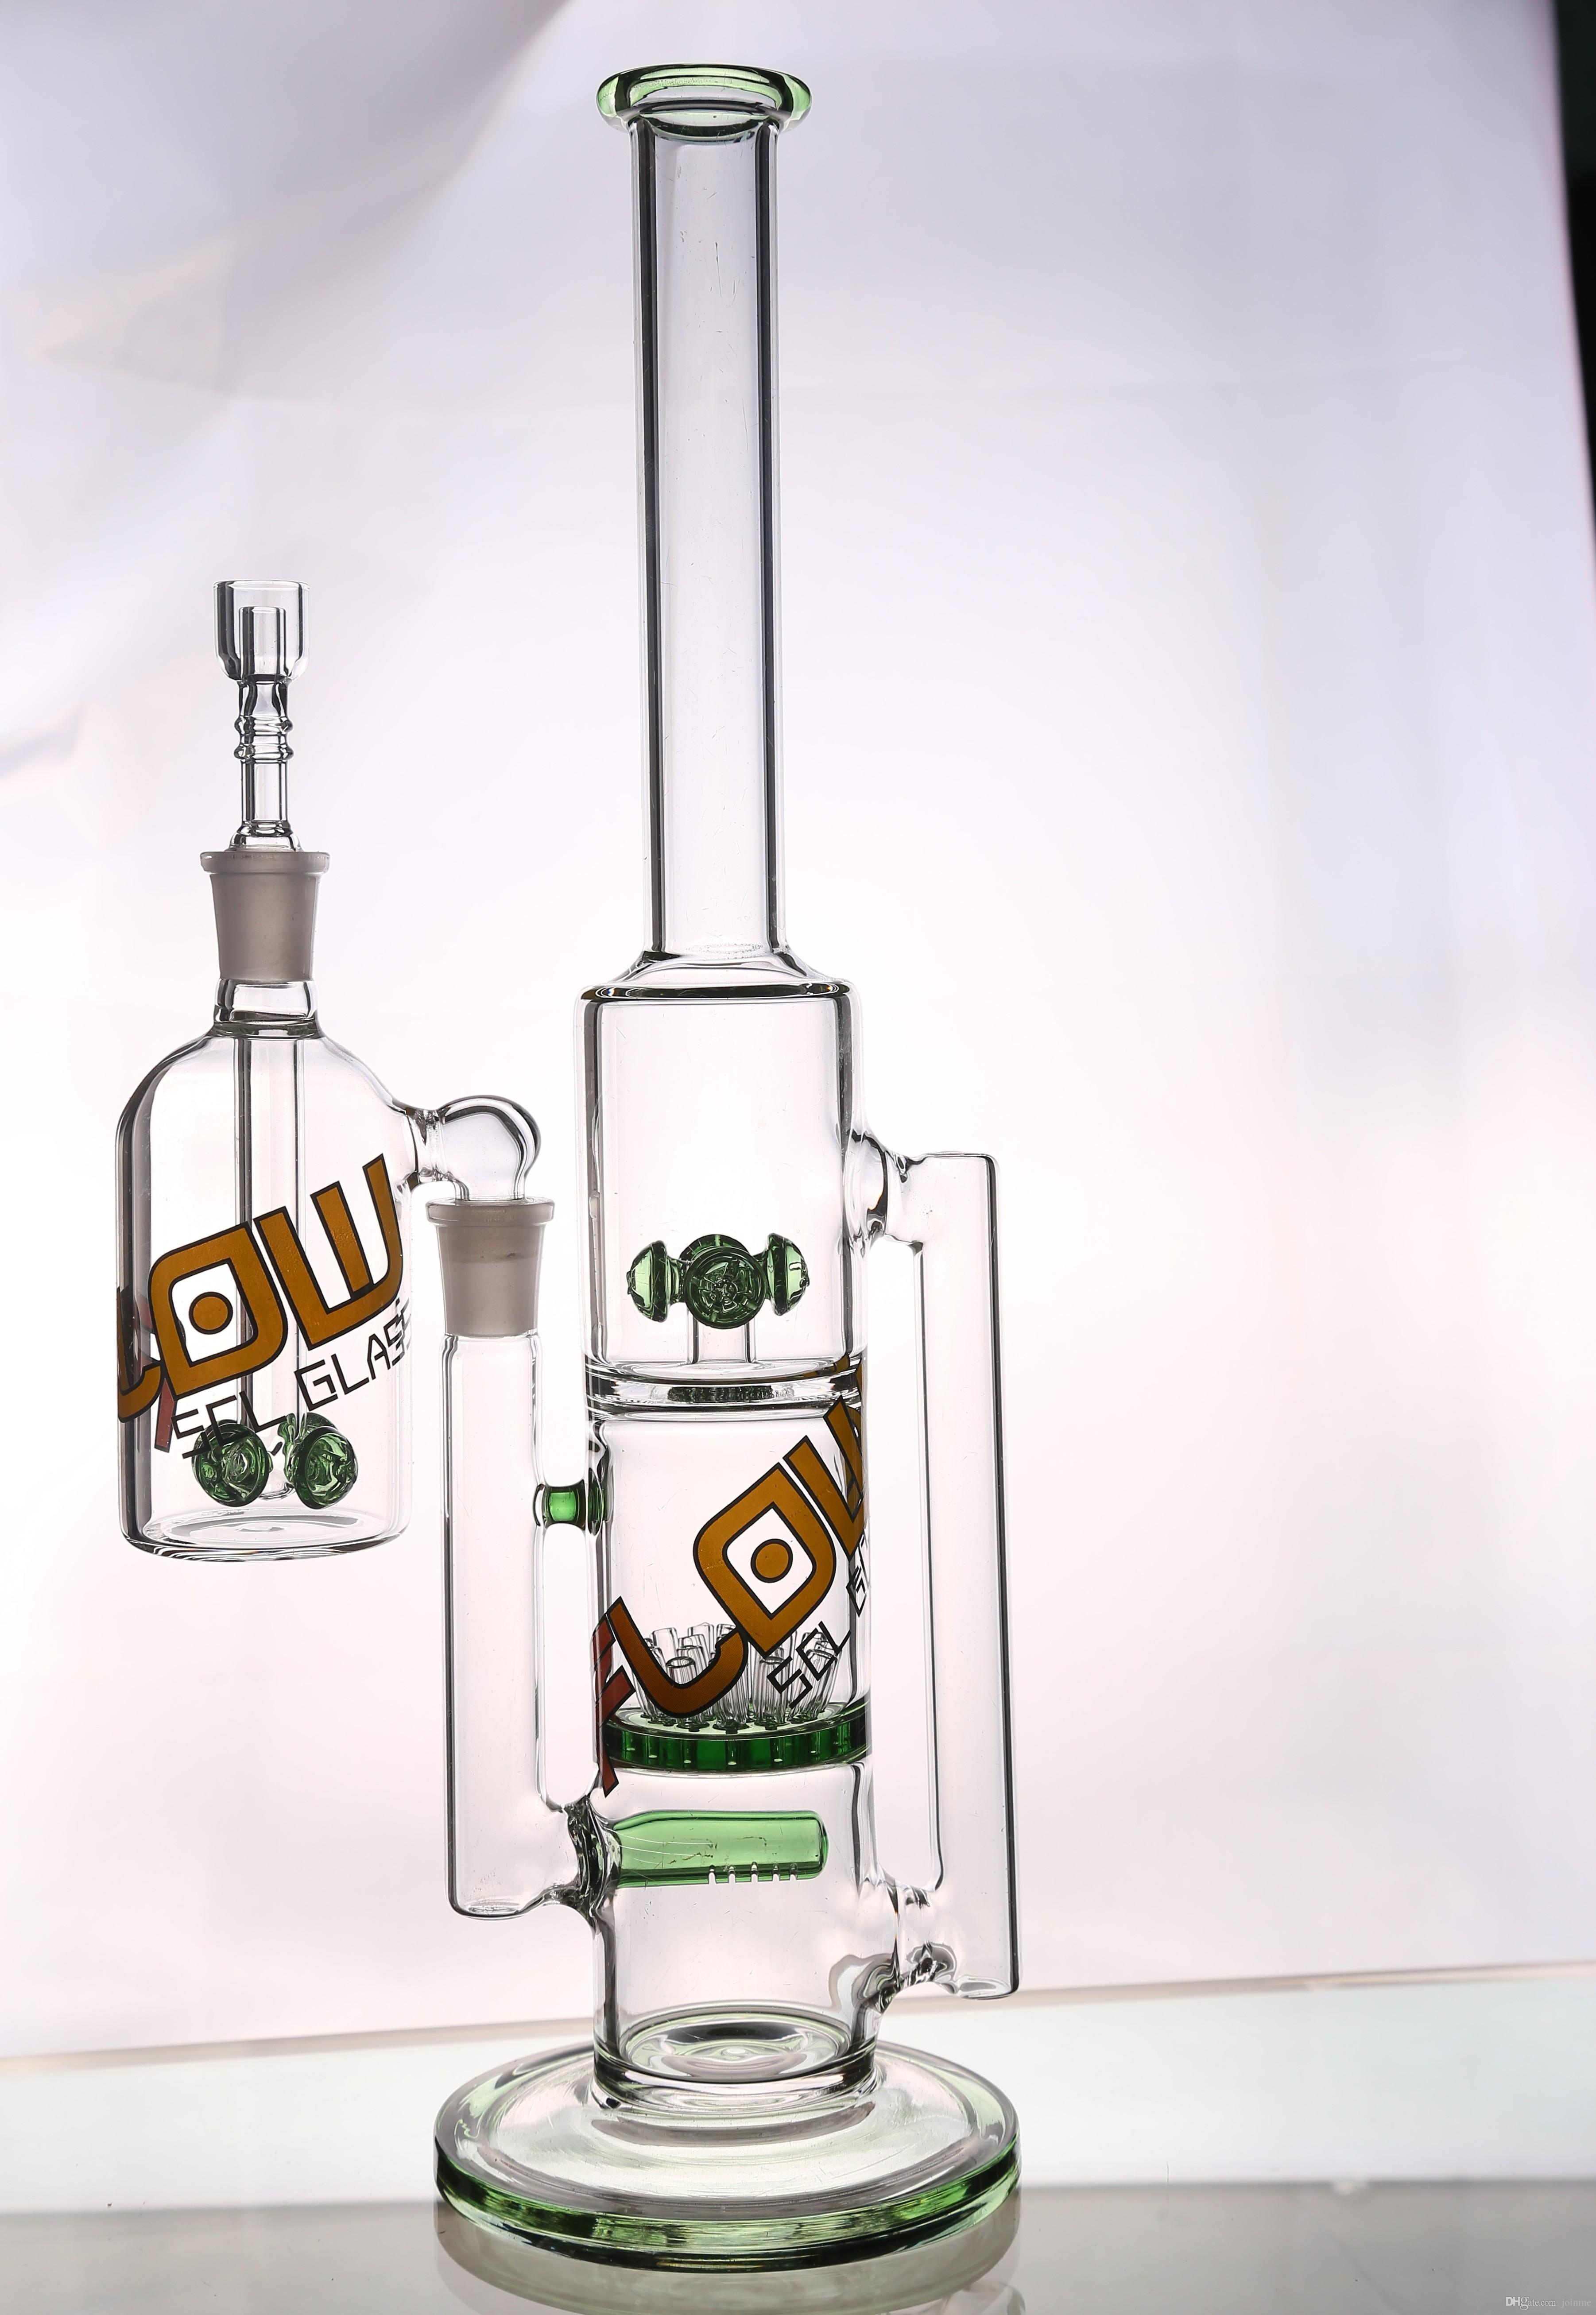 2018 diamond glass bong gear works perc with showerhead perc water bong 34cm cheap bong hookah pipe with 144mm joint with ash catcher glass pipe from - Diamond Glass Bong